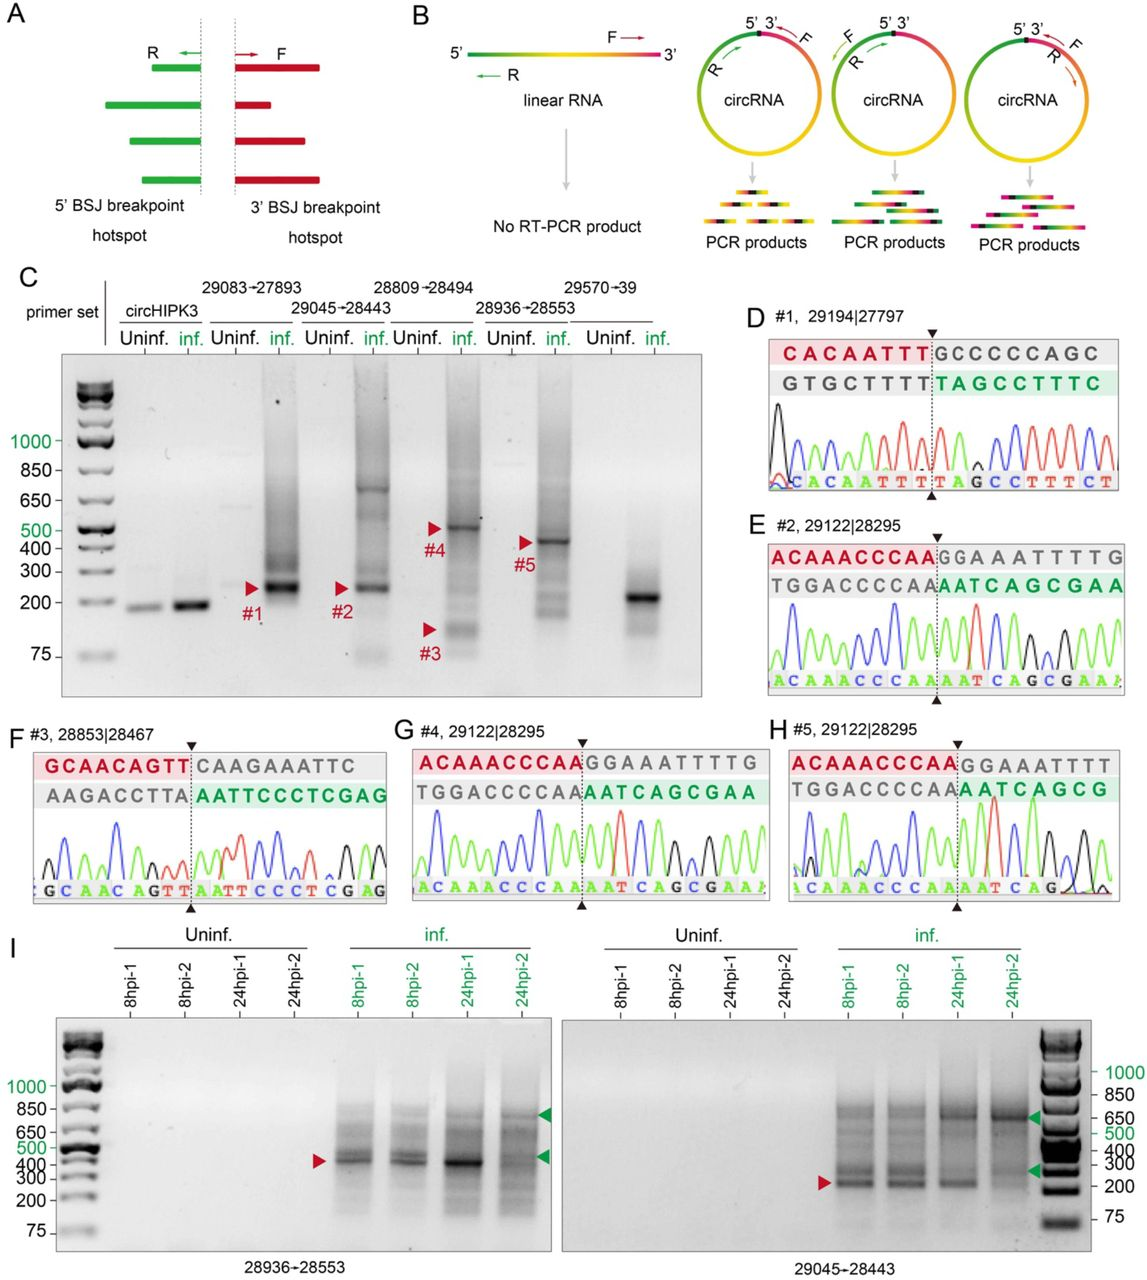 Experimental validation of SARS-CoV-2 circRNAs in Vero E6 cells. (A) Schematic showing divergent primers were designed to amplify all predicted BSJs in a given hotspot. (B) Illustration of BSJ RT-PCR with divergent primers would selectively amplify different regions of circRNAs but not linear RNAs. (C) BSJ RT-PCR with selected primer sets. Bands indicated by red arrows were gel-purified and sequenced. Note the intensity of most candidate BSJs were comparable to that of the positive control, circHIPK3 of host origin. Infection also enhanced the expression of circHIPK3. (D-H) Examples of Sanger sequencing results for PCR products in (C). Sequences around the 3' and 5' breakpoints were aligned to the BSJ sequence. BSJ Breakpoints were indicated by dashed lines. Donor and acceptor sequences were highlighted in magenta and green, respectively. Sequences excluded from the circRNA were shown in grey. (I) BSJ RT-PCR probing SARS-CoV-2_29122 28925 in uninfected and infected Vero E6 cells at 8hpi and 24hpi. Primer sets were labelled at the bottom of the gels. Red arrows correspond to bands #5 and #2 in (C). Green arrows indicate candidate circRNAs that are differentially expressed at early and late stage of infection.